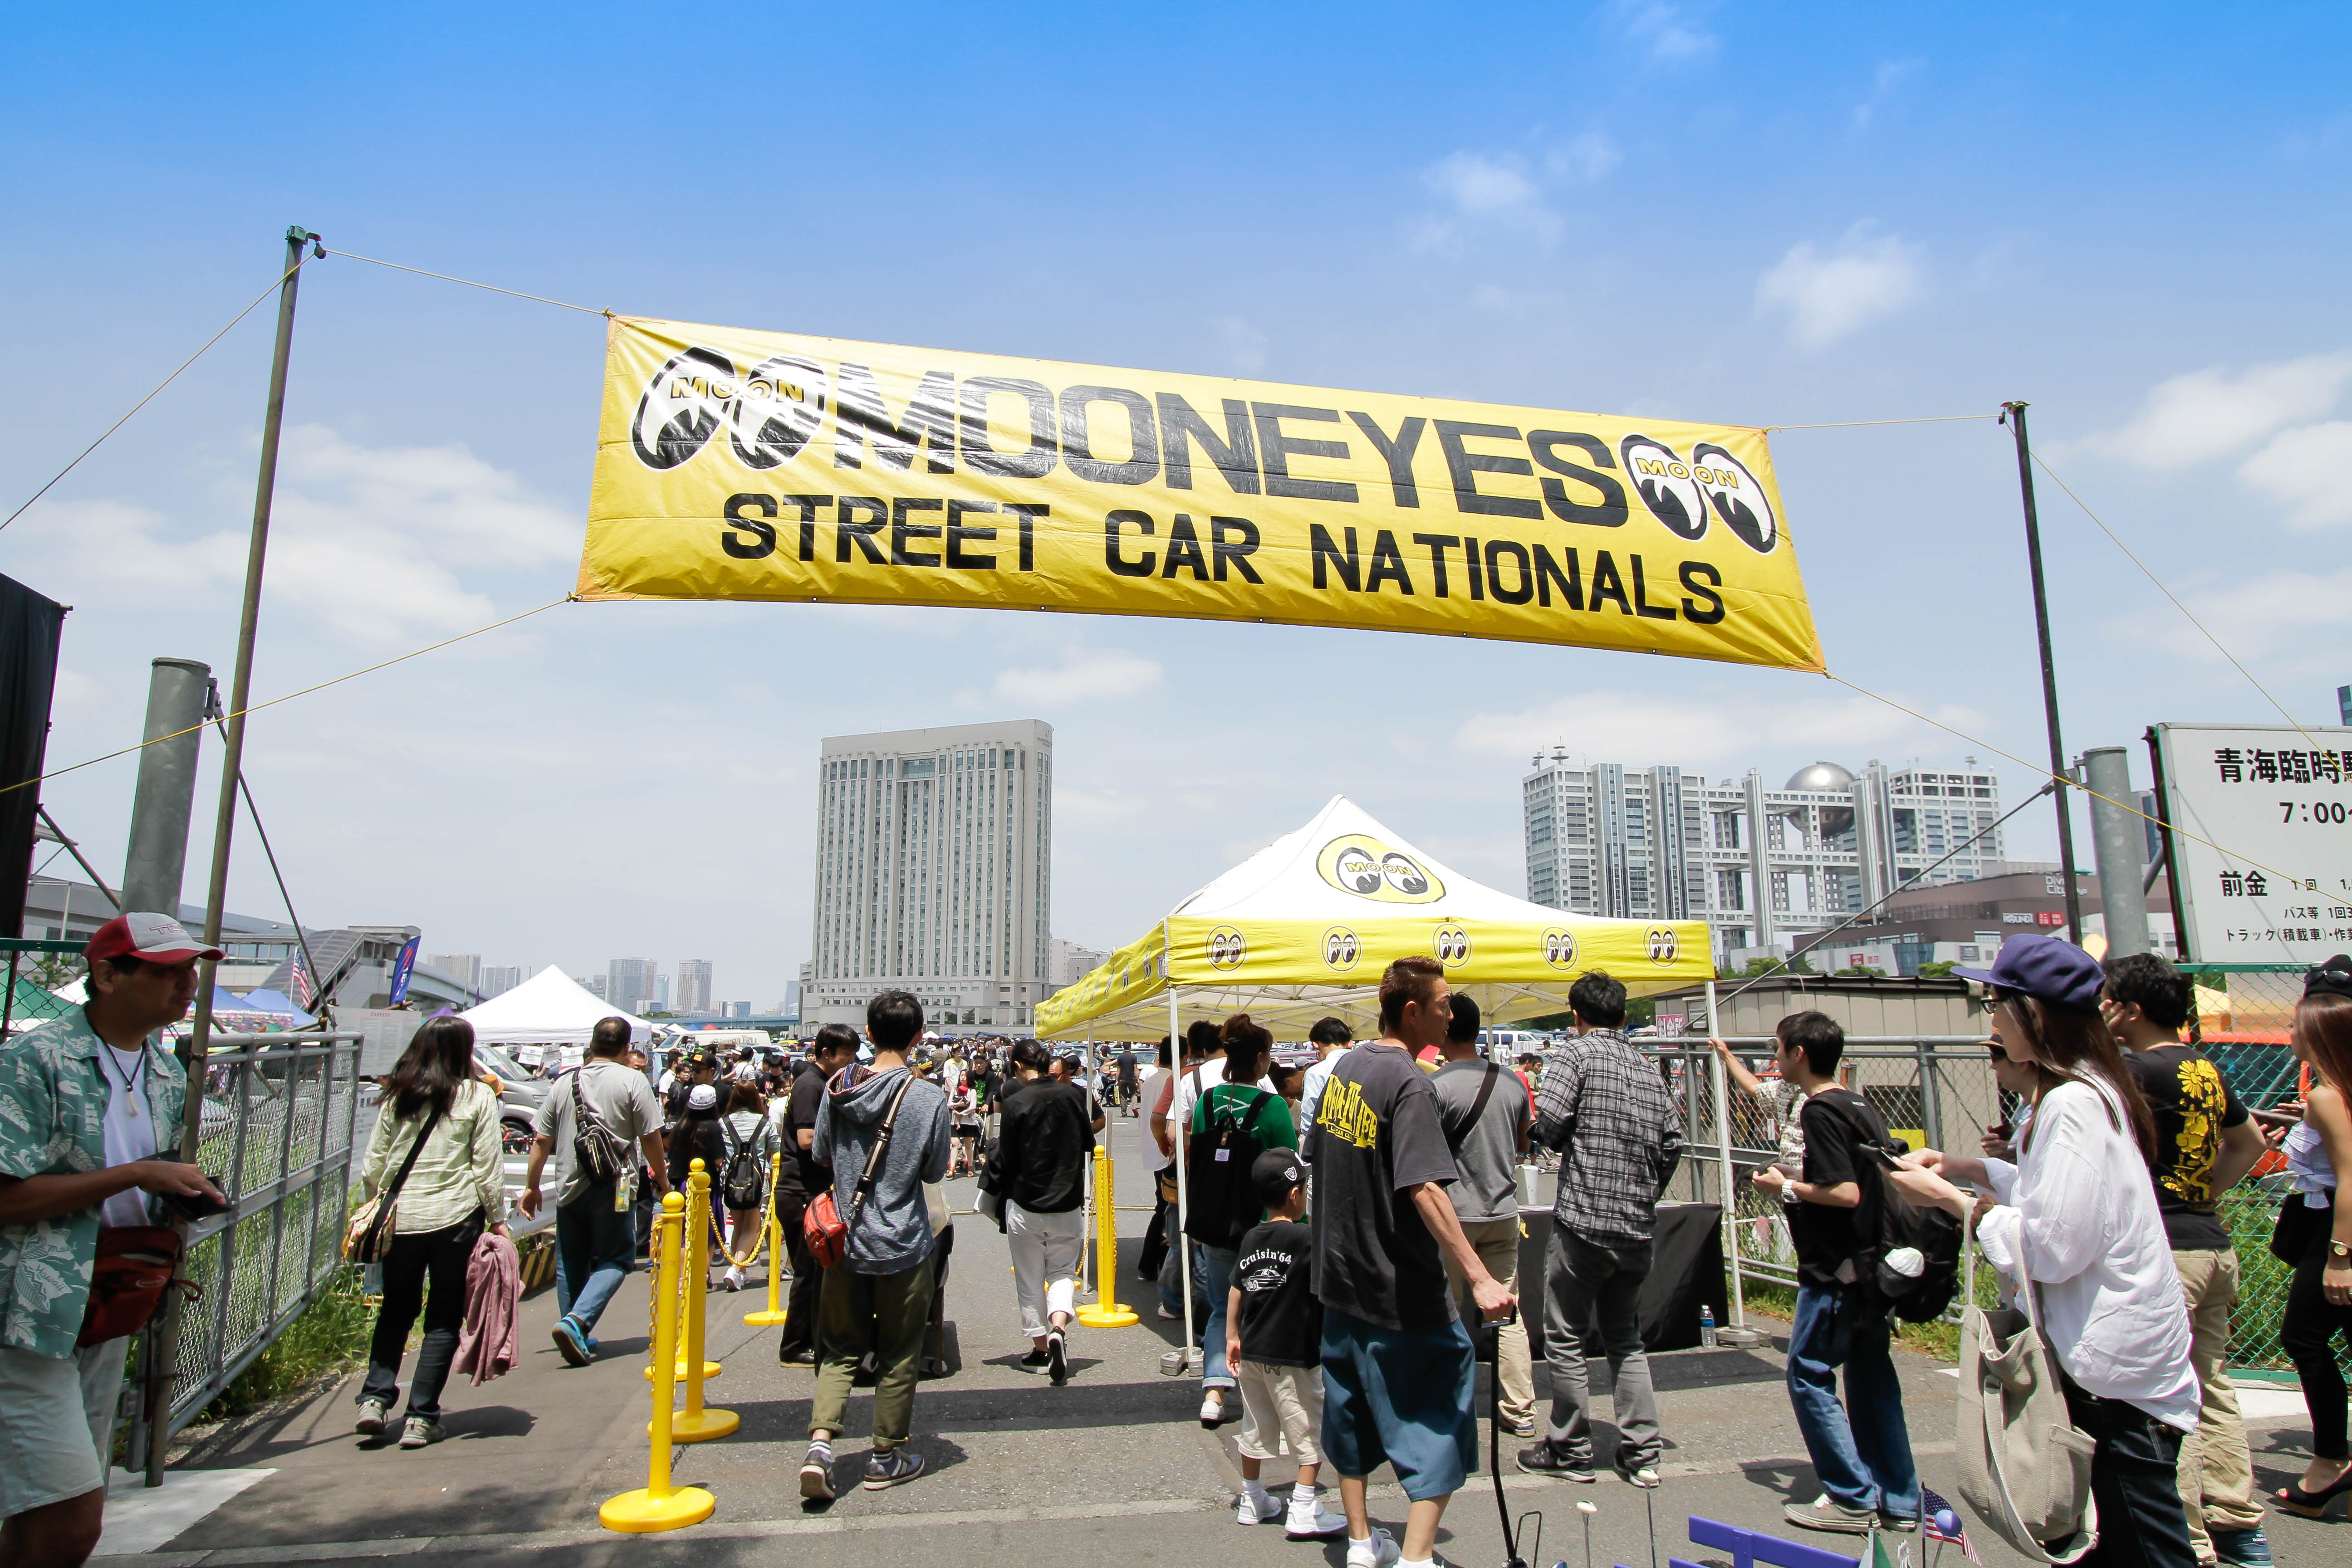 MOONEYES Street Car Nationals® 2017